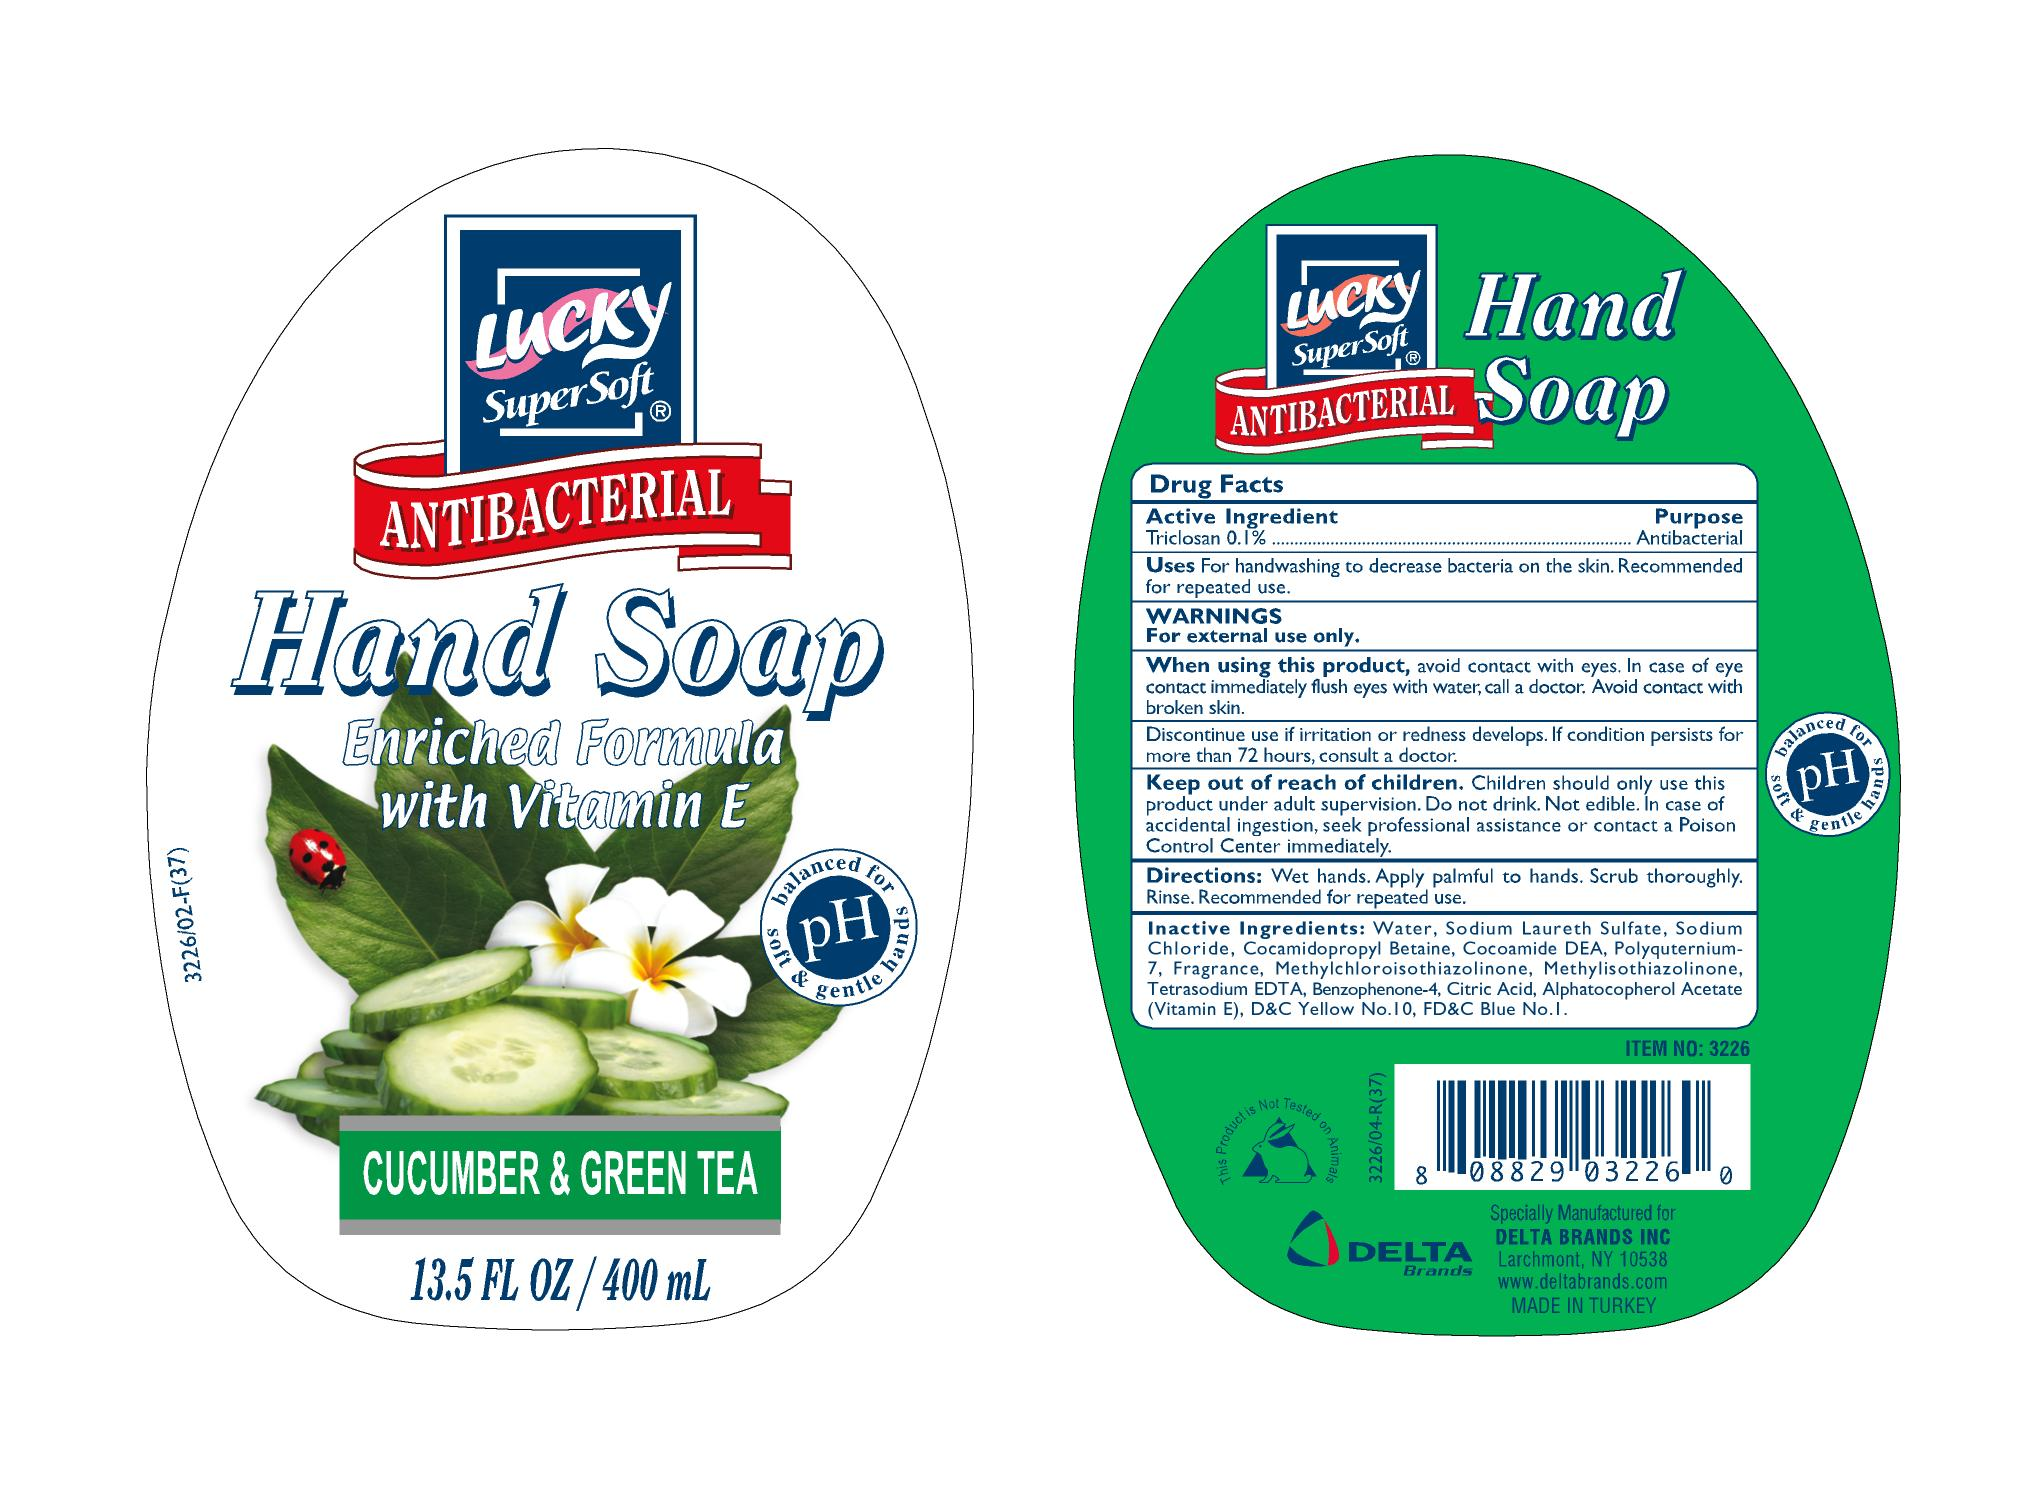 Lucky Antibacterial Hand Soap Supersoft (Triclosan) Liquid [Delta Brands Inc]